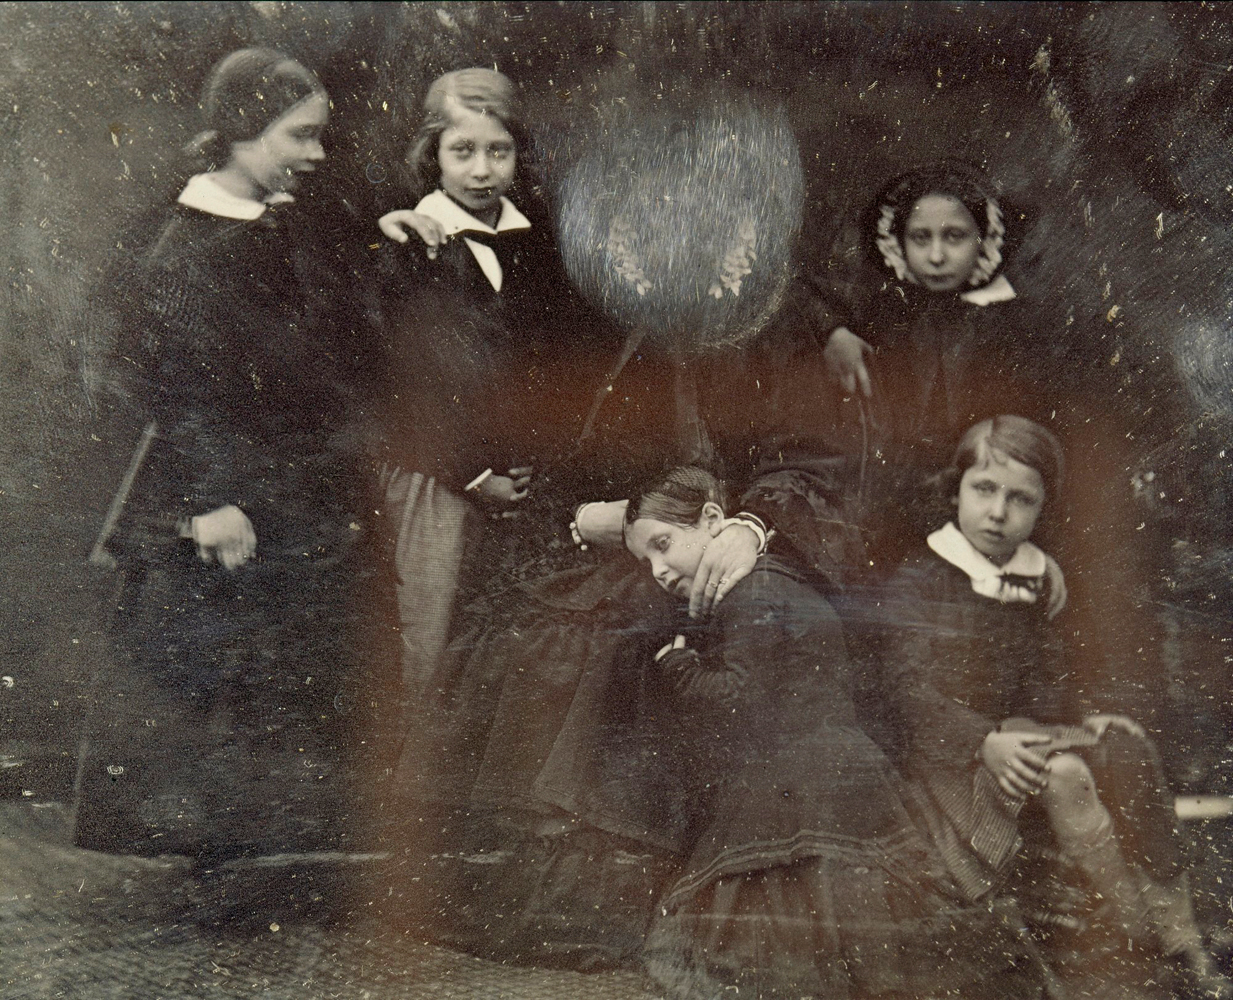 Queen Victoria, the Princess Royal, the Prince of Wales, Princess Alice, Princess Helena, Prince Alfred, January 17, 1852